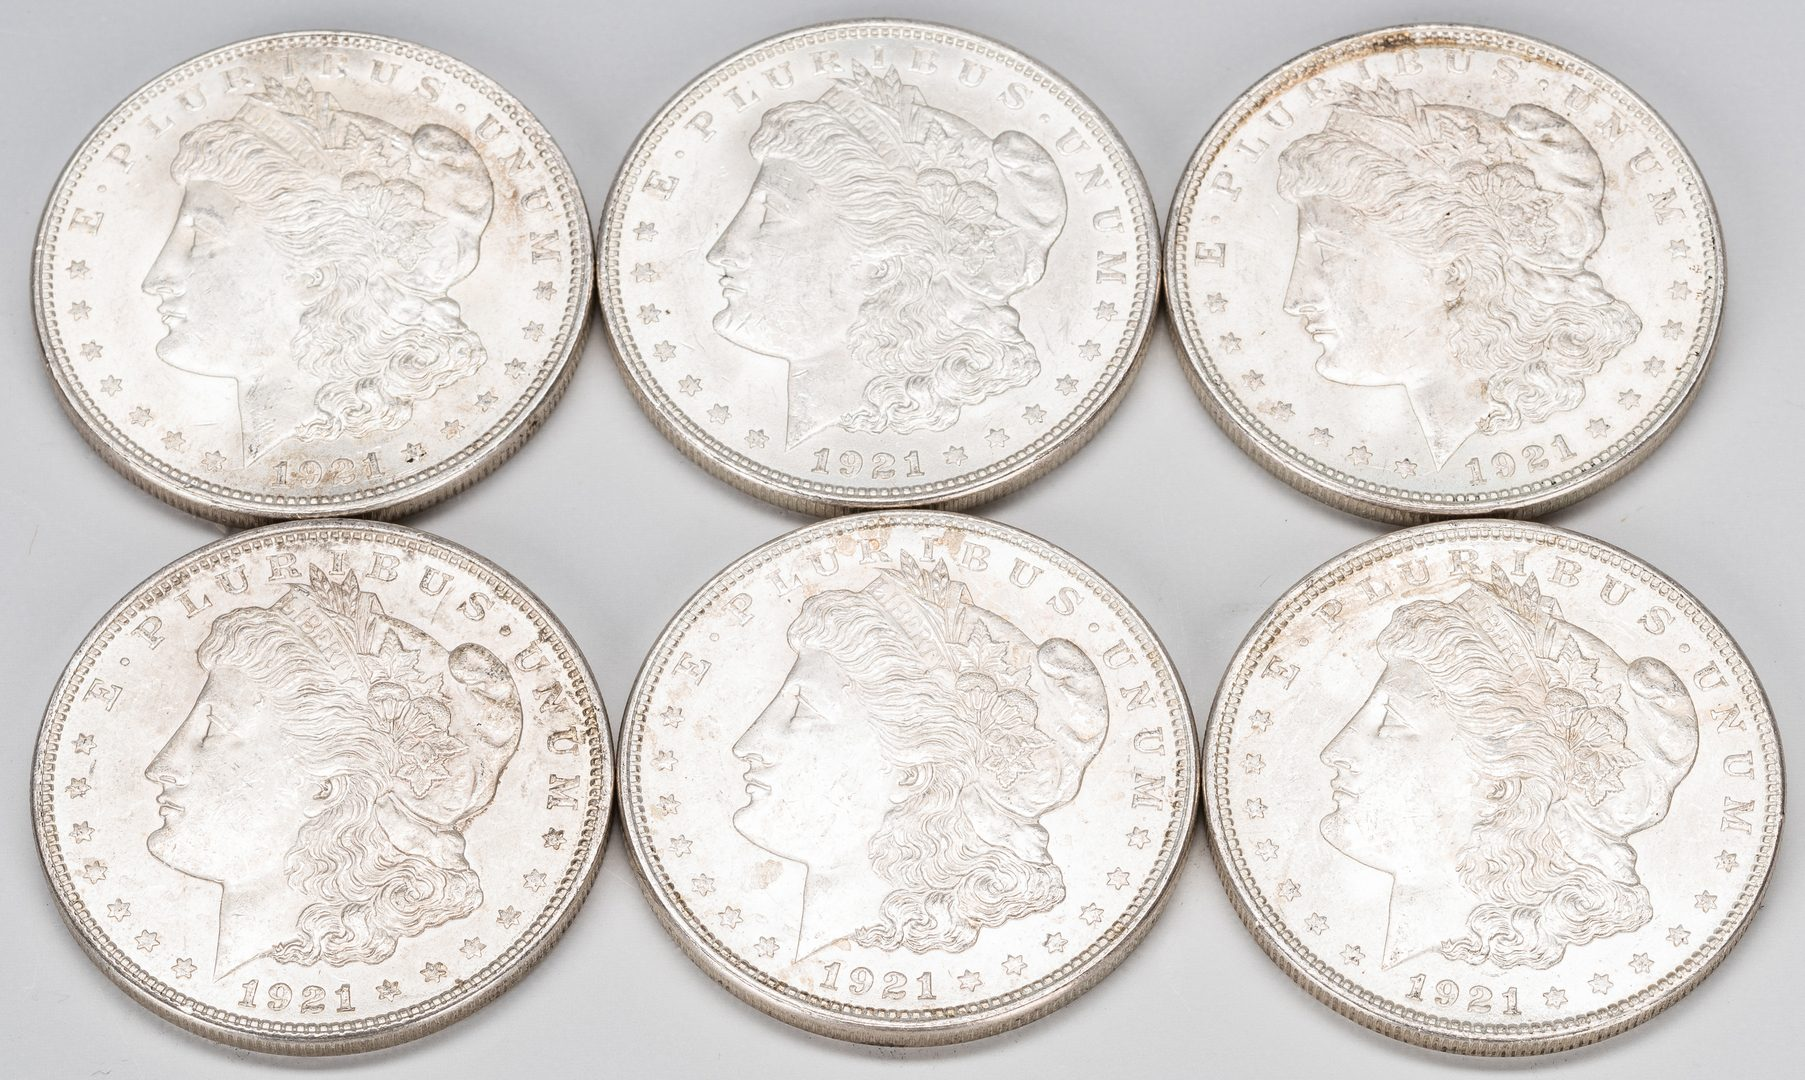 Lot 888: 53 U.S. 1921 Morgan Silver Dollars